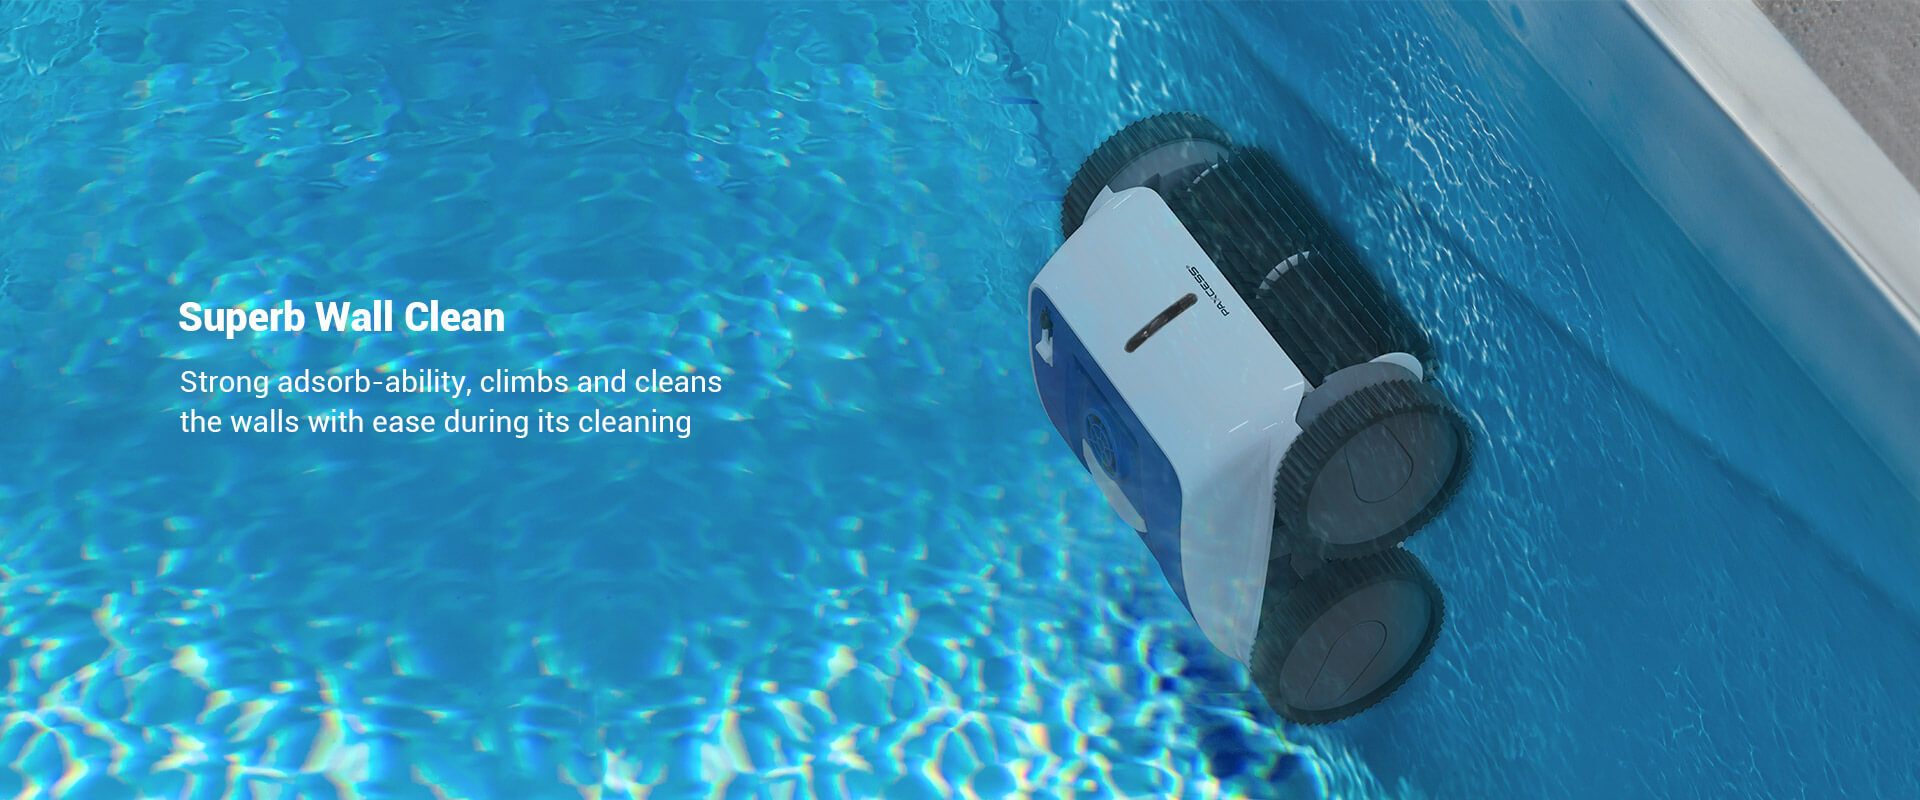 PAXCESS Cordless 8600 Robotic Pool Cleaner (2)